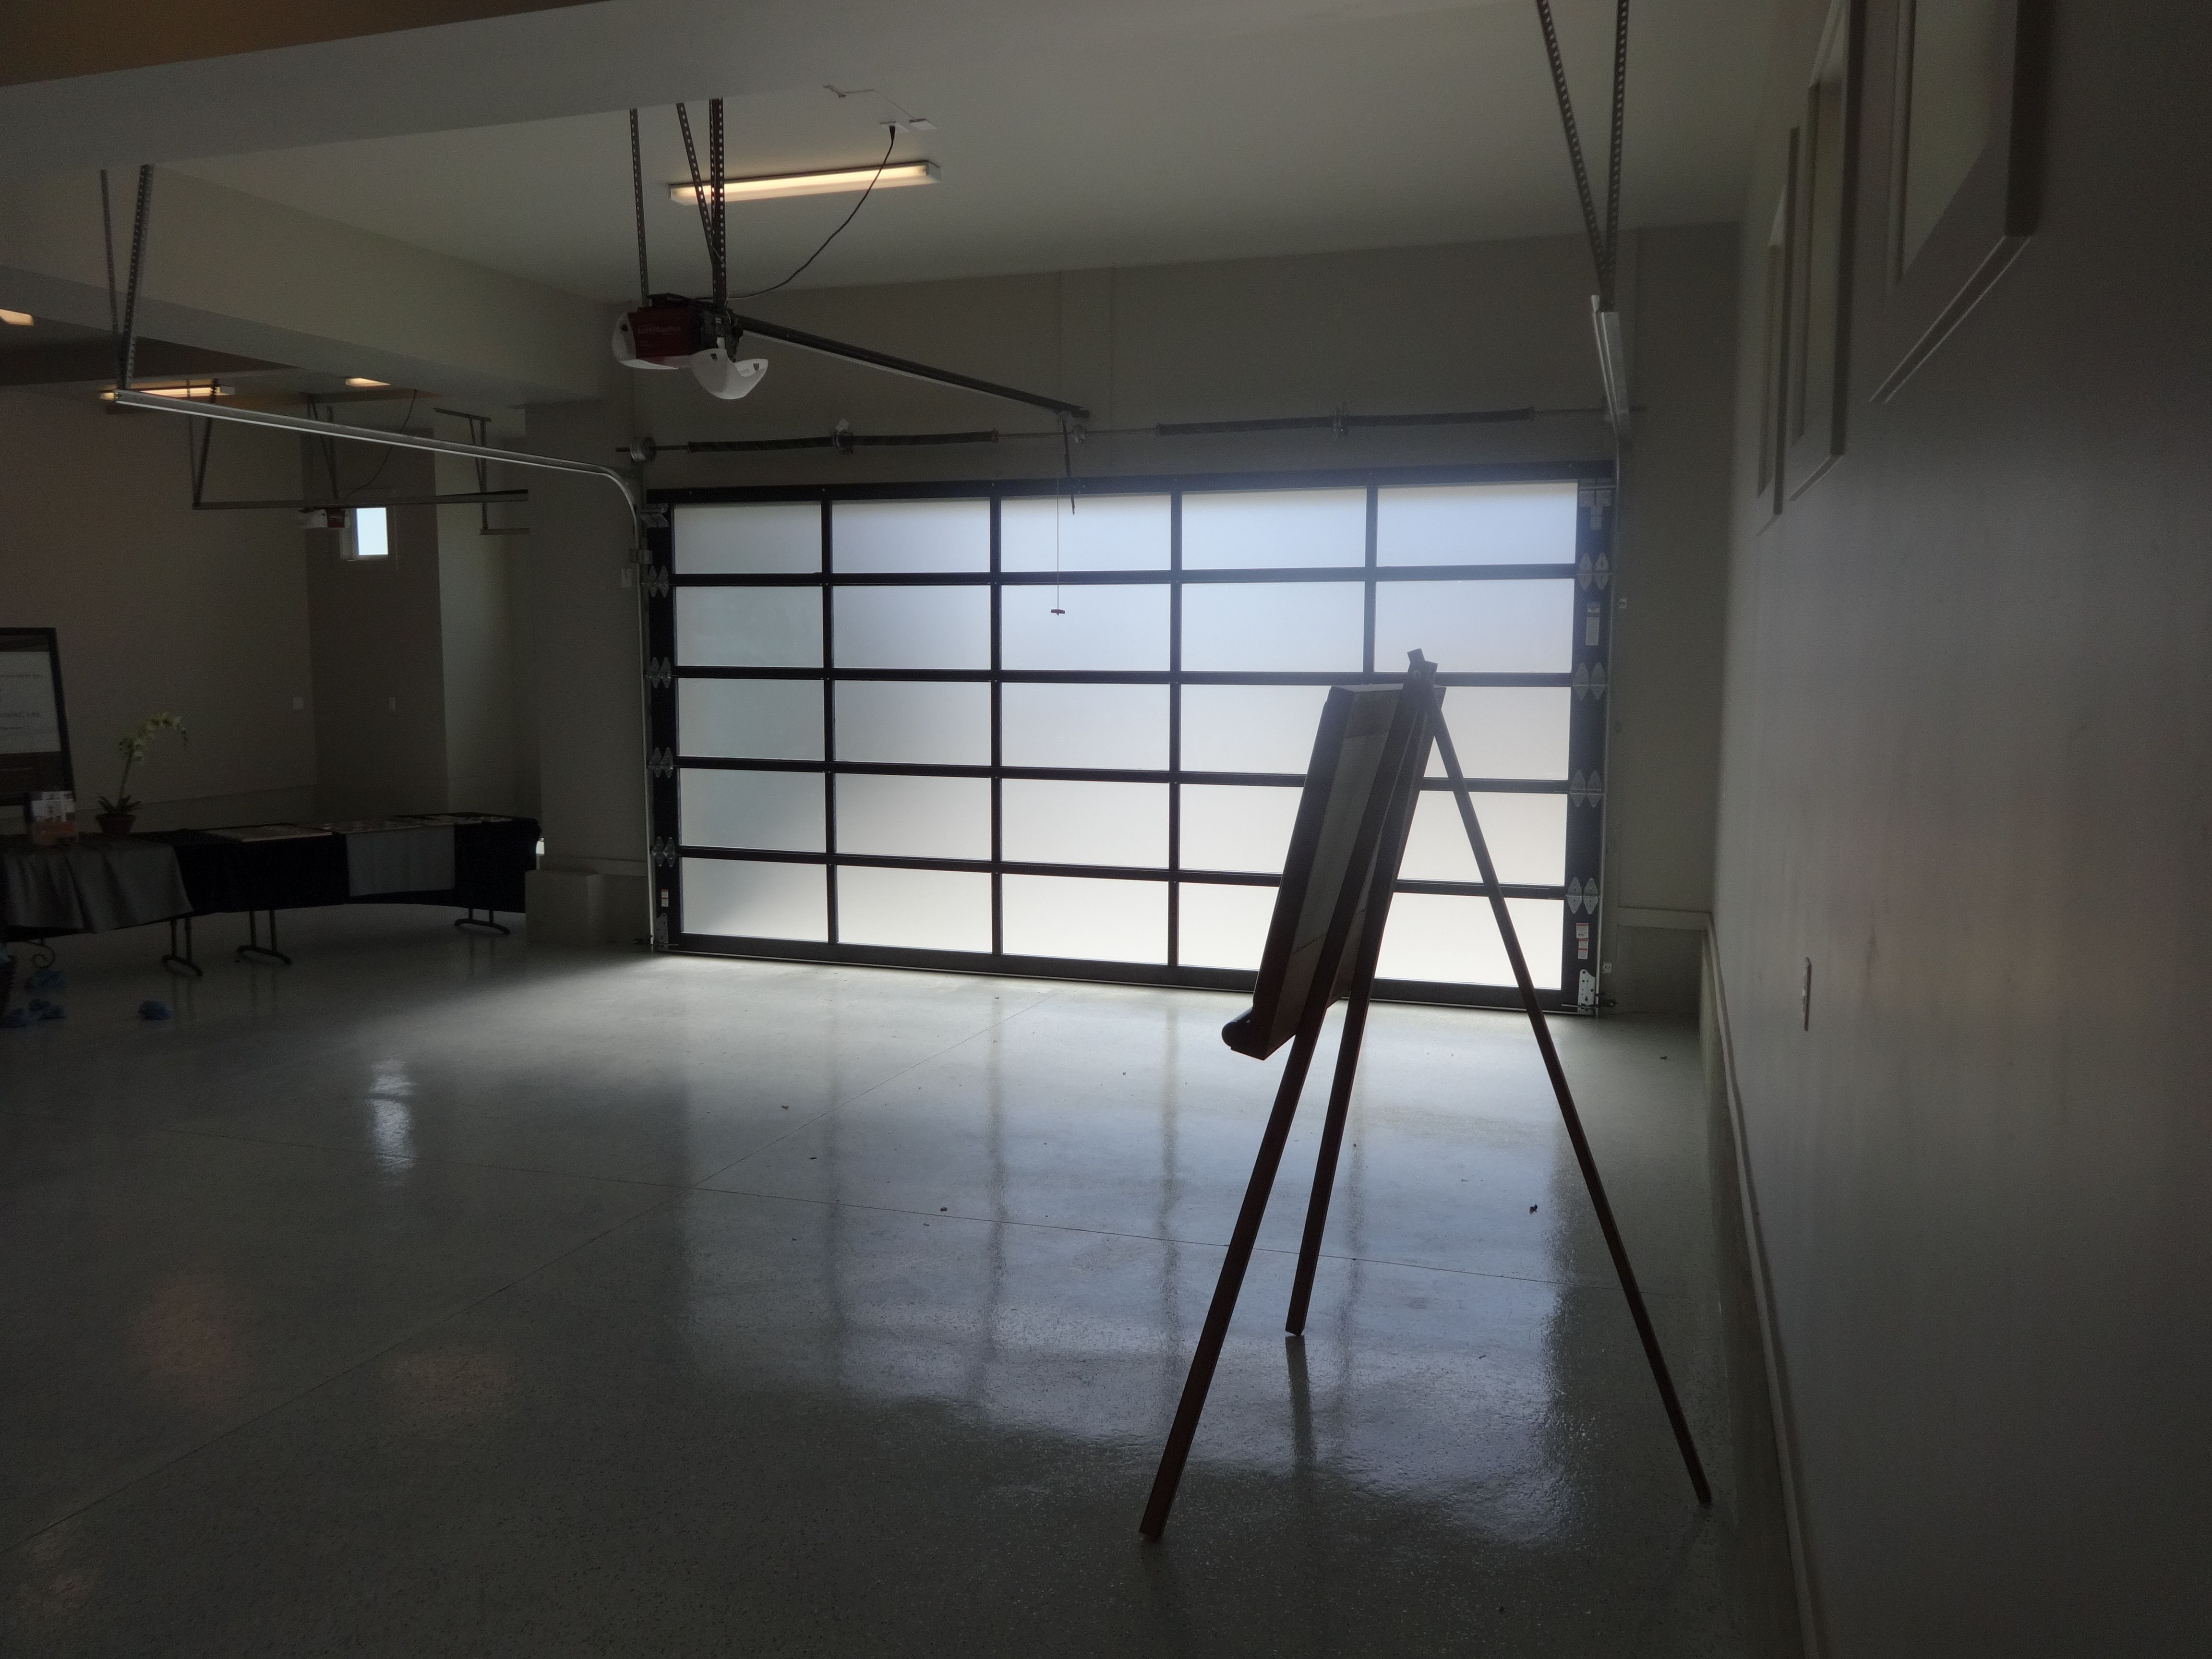 translucent garage door and the cool floor & translucent garage door and the cool floor | Home | Dream Home ...